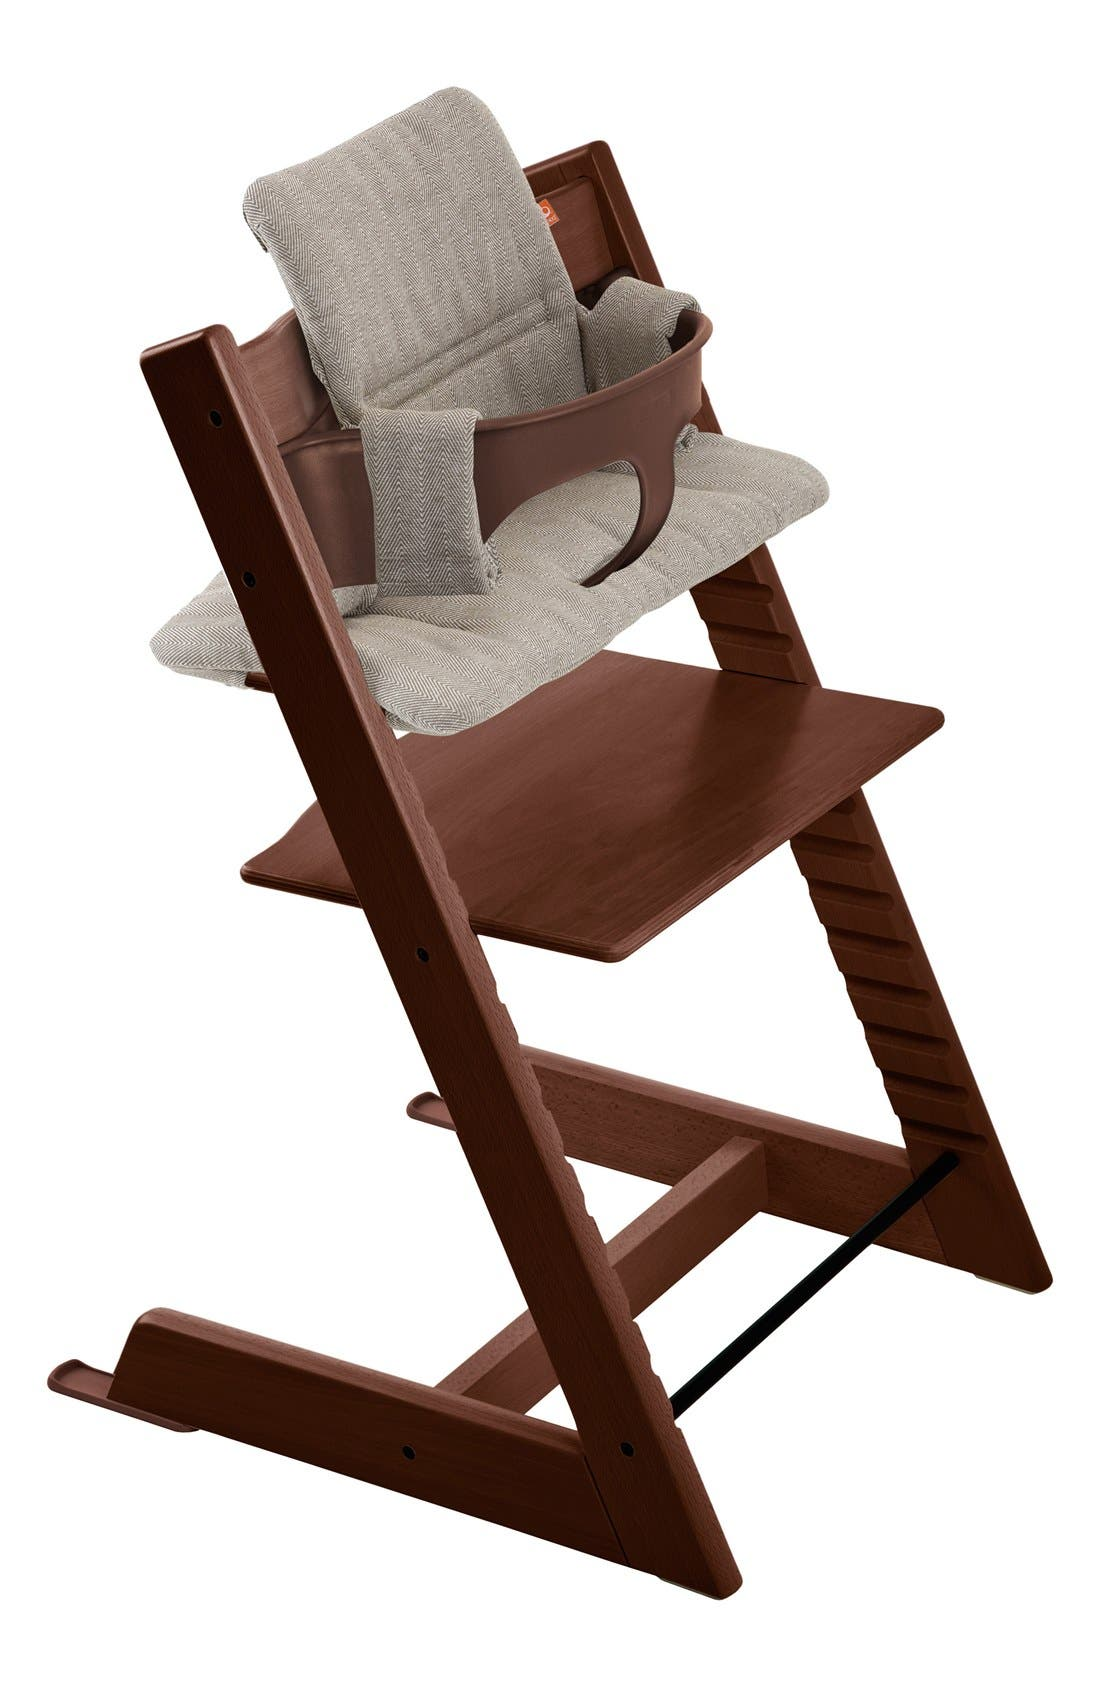 Stokke 'Tripp Trapp®' Chair, Baby Set, Cushion & Tray Set (Nordstrom Exclusive)